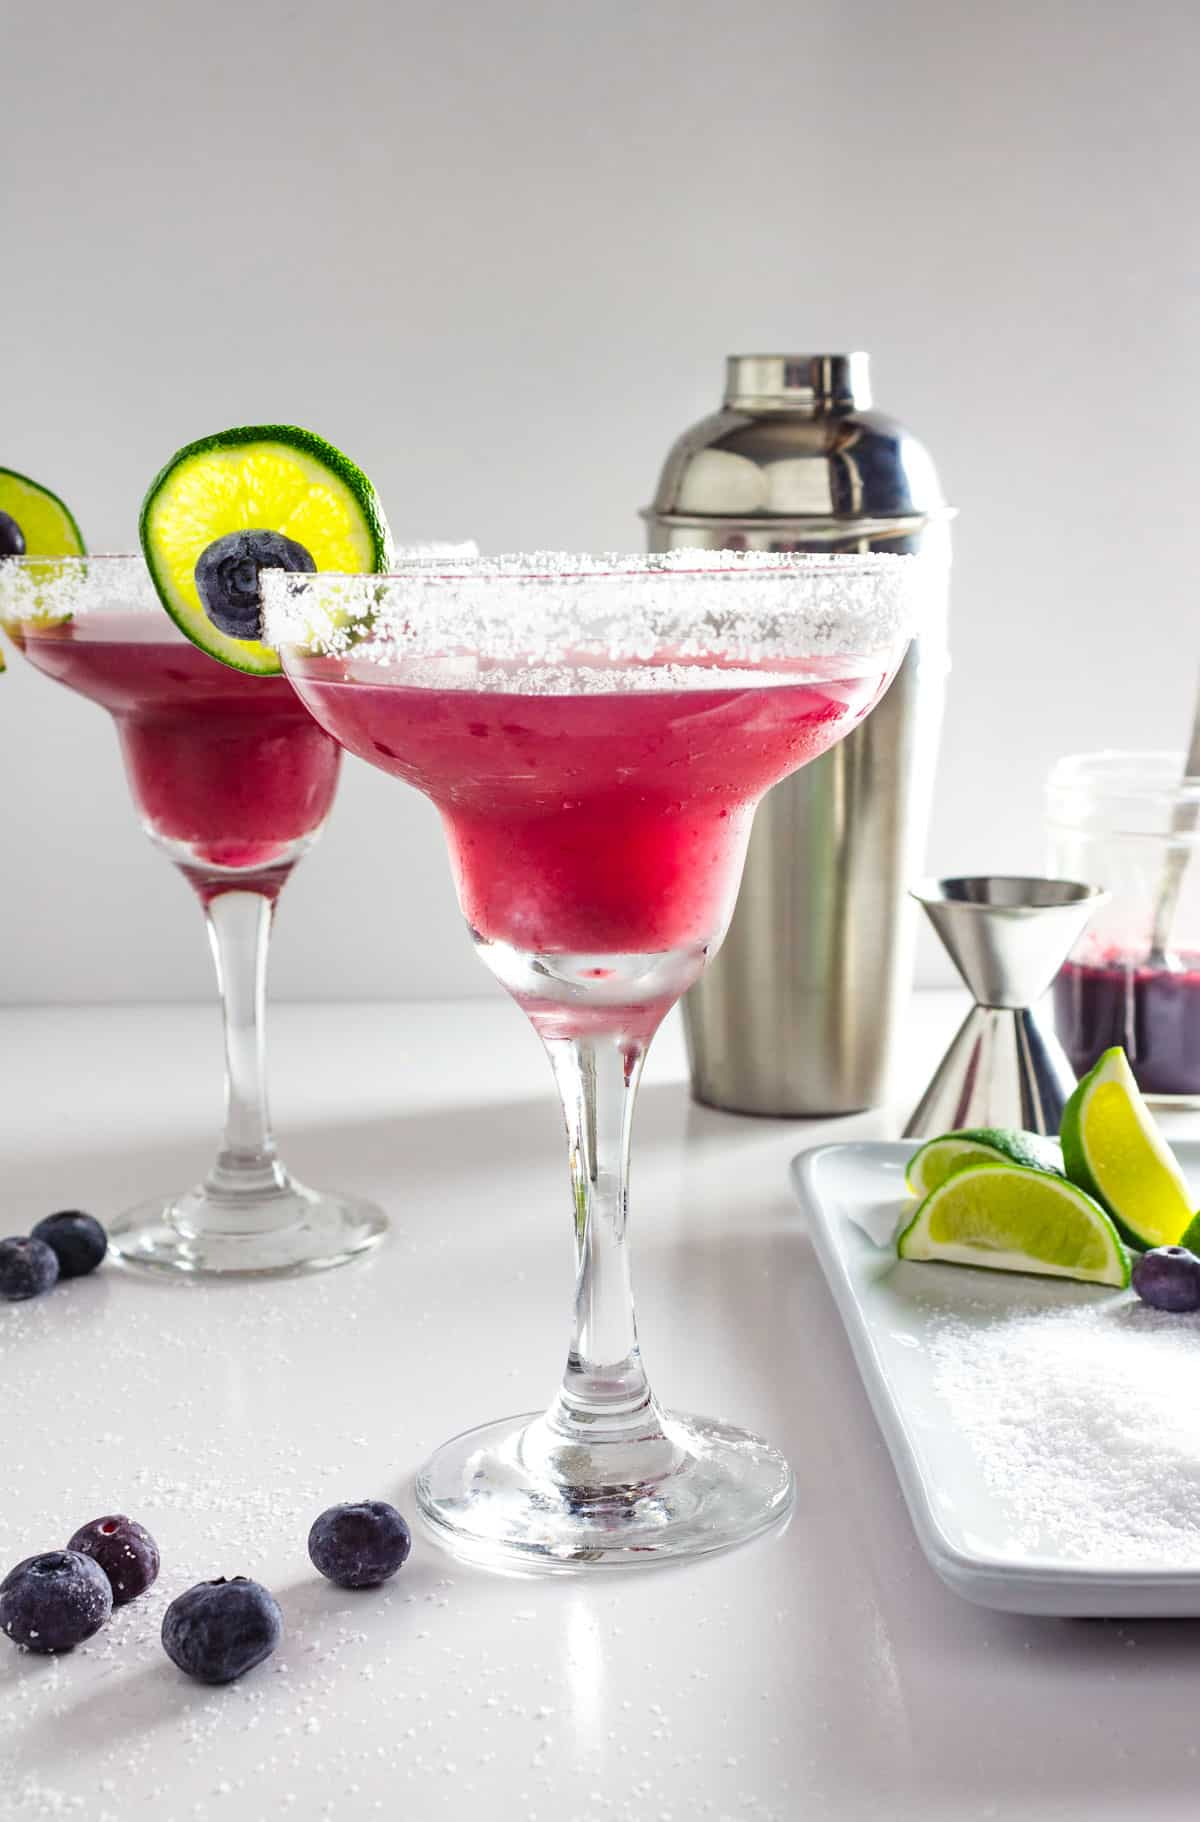 A table is set up for making blueberry margaritas.